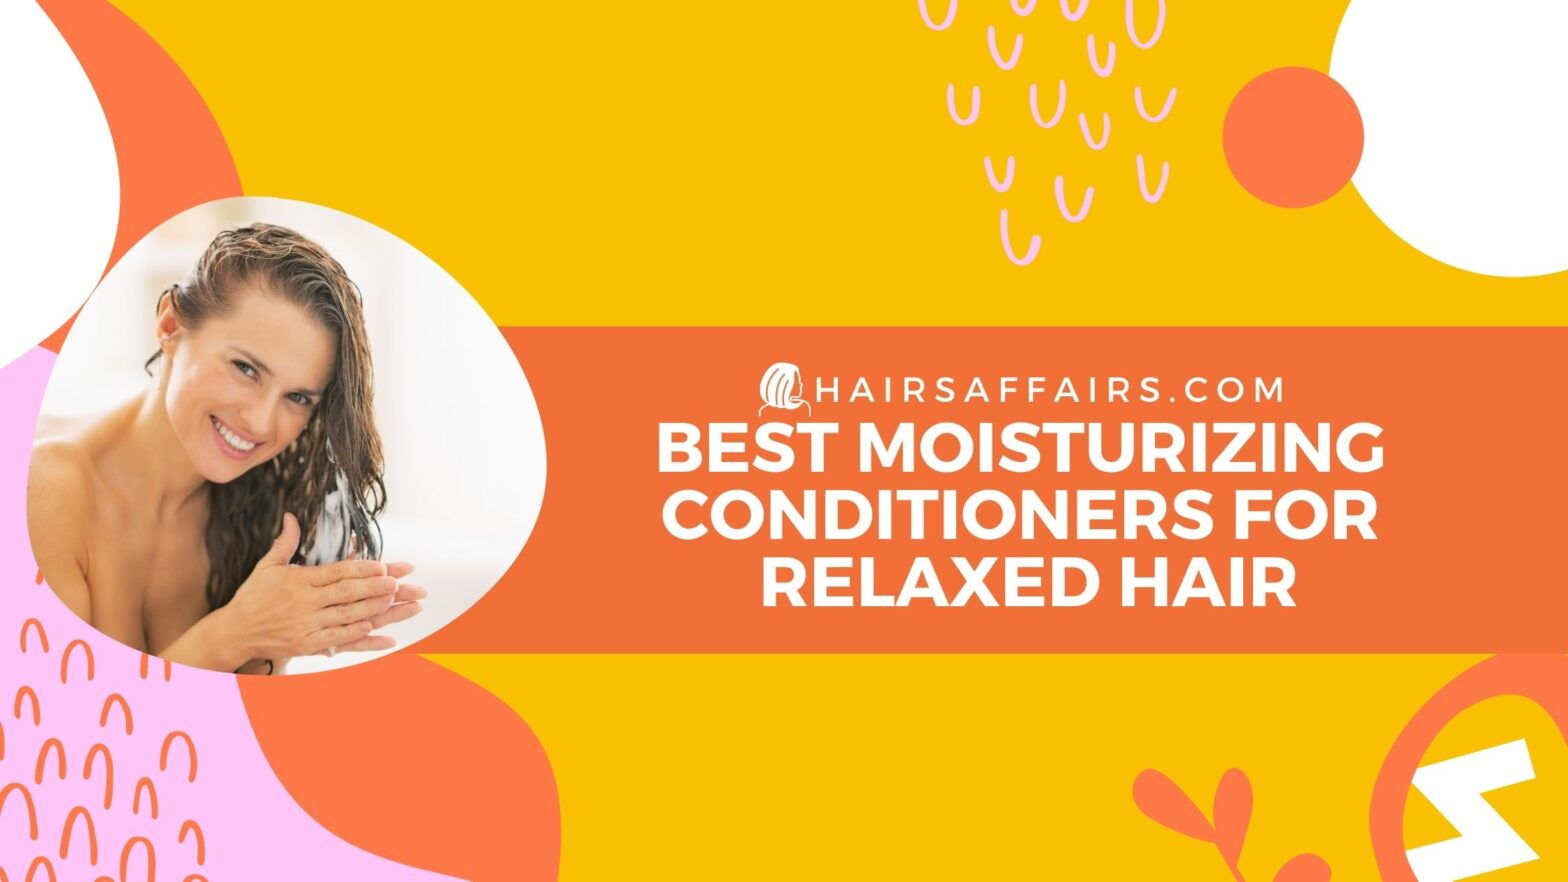 Best-moisturizing-conditioners-for-relaxed-hair